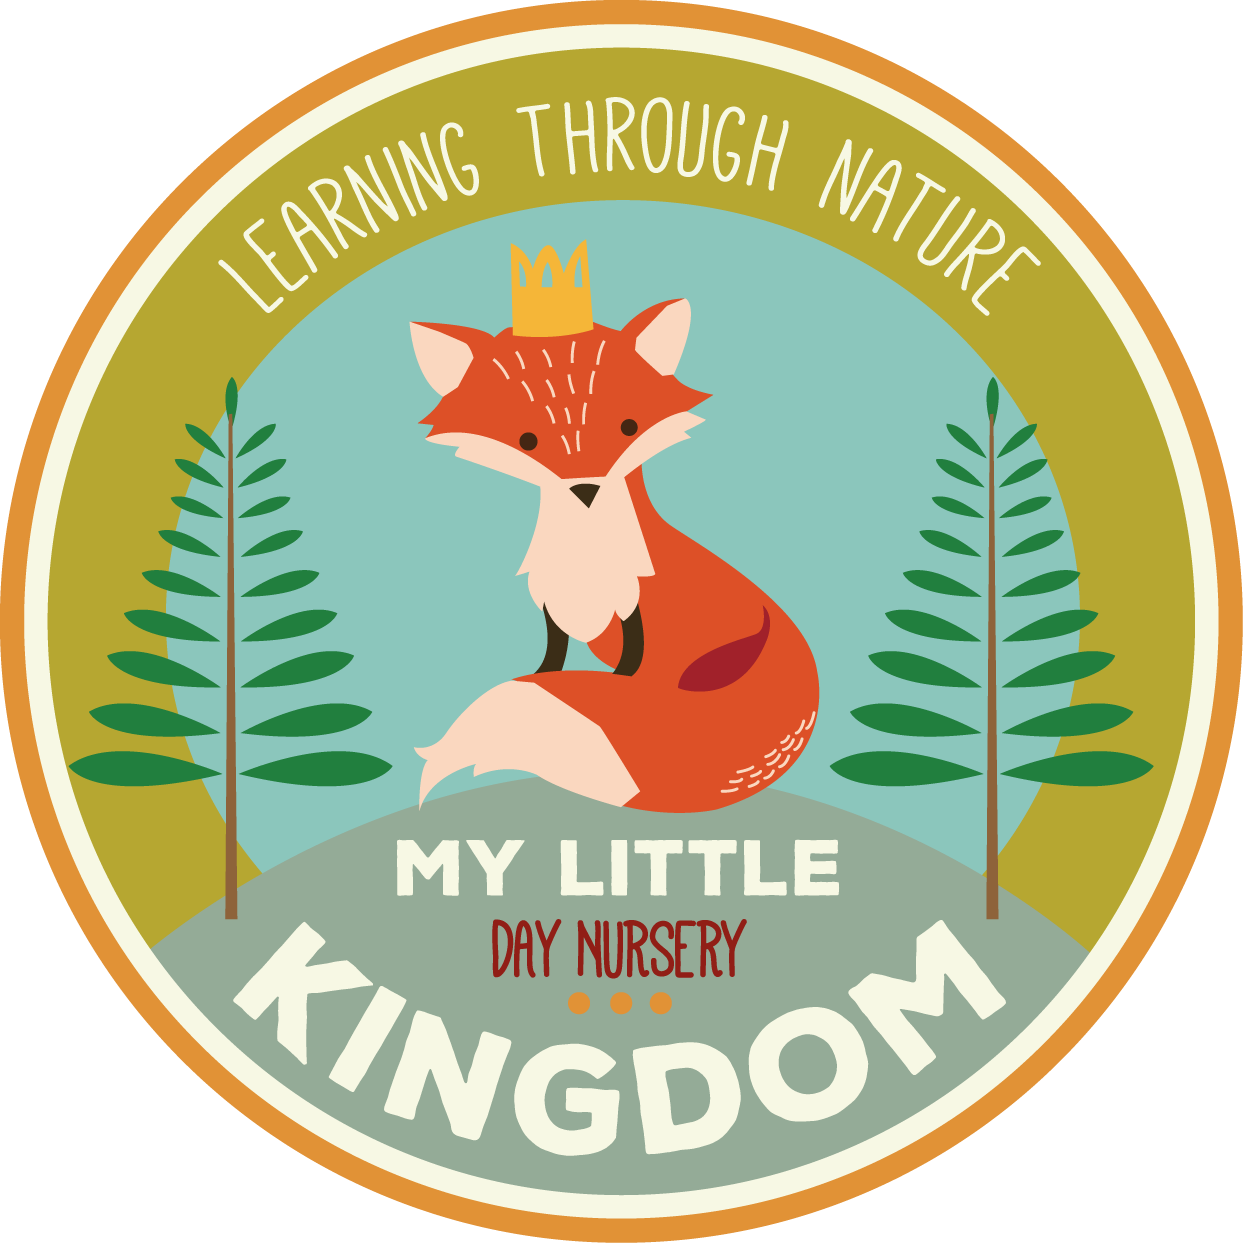 My Little Kingdom Day Nursery